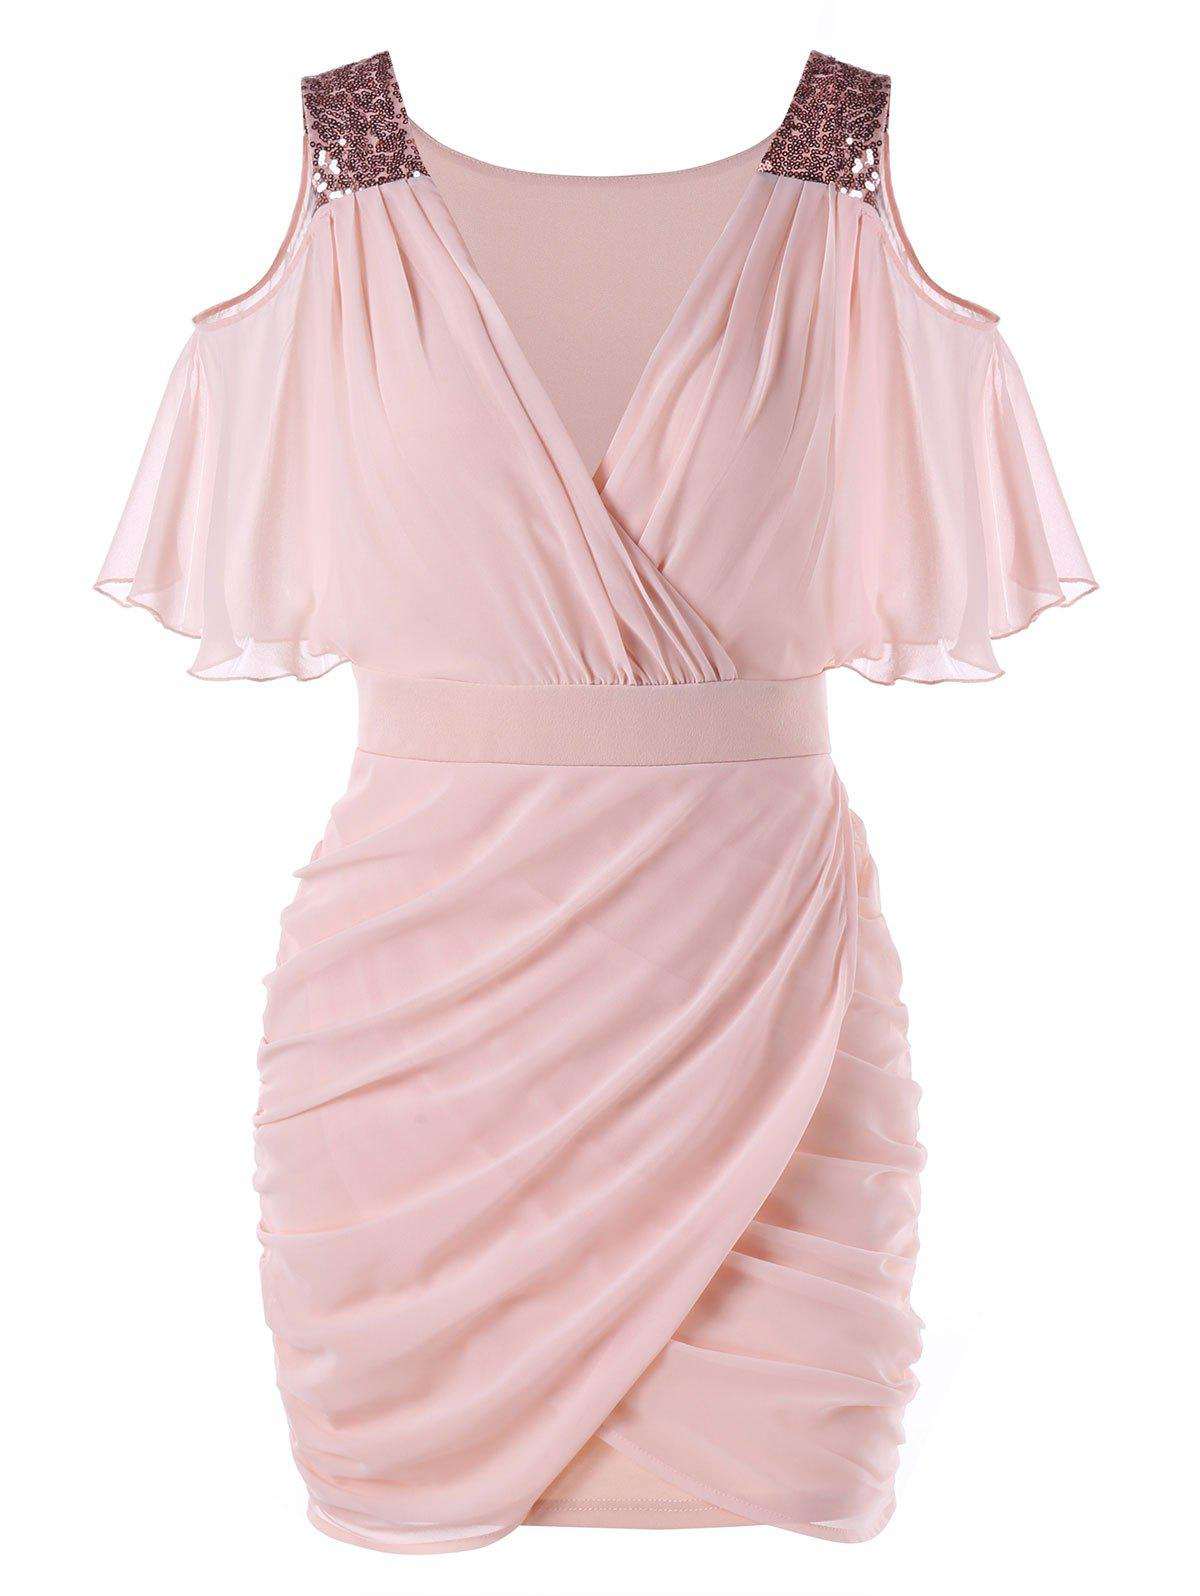 Open Shoulder Sequined Chiffon Dress - LIGHT PINK XL